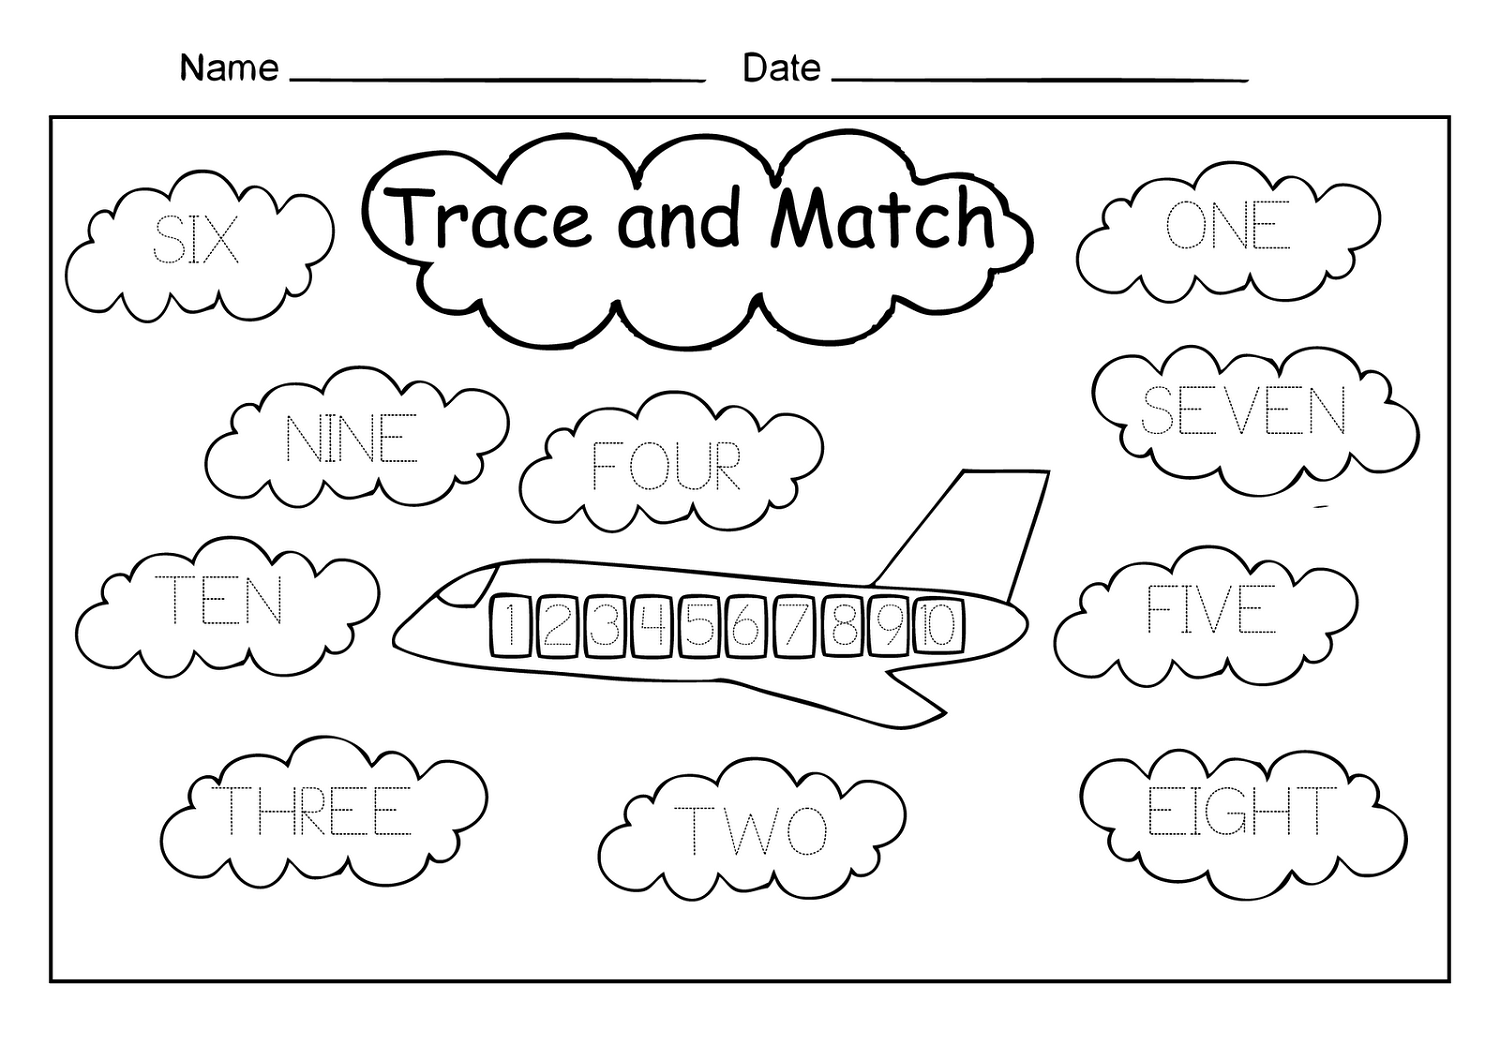 Worksheets For Numbers The Best Worksheets Image Collection